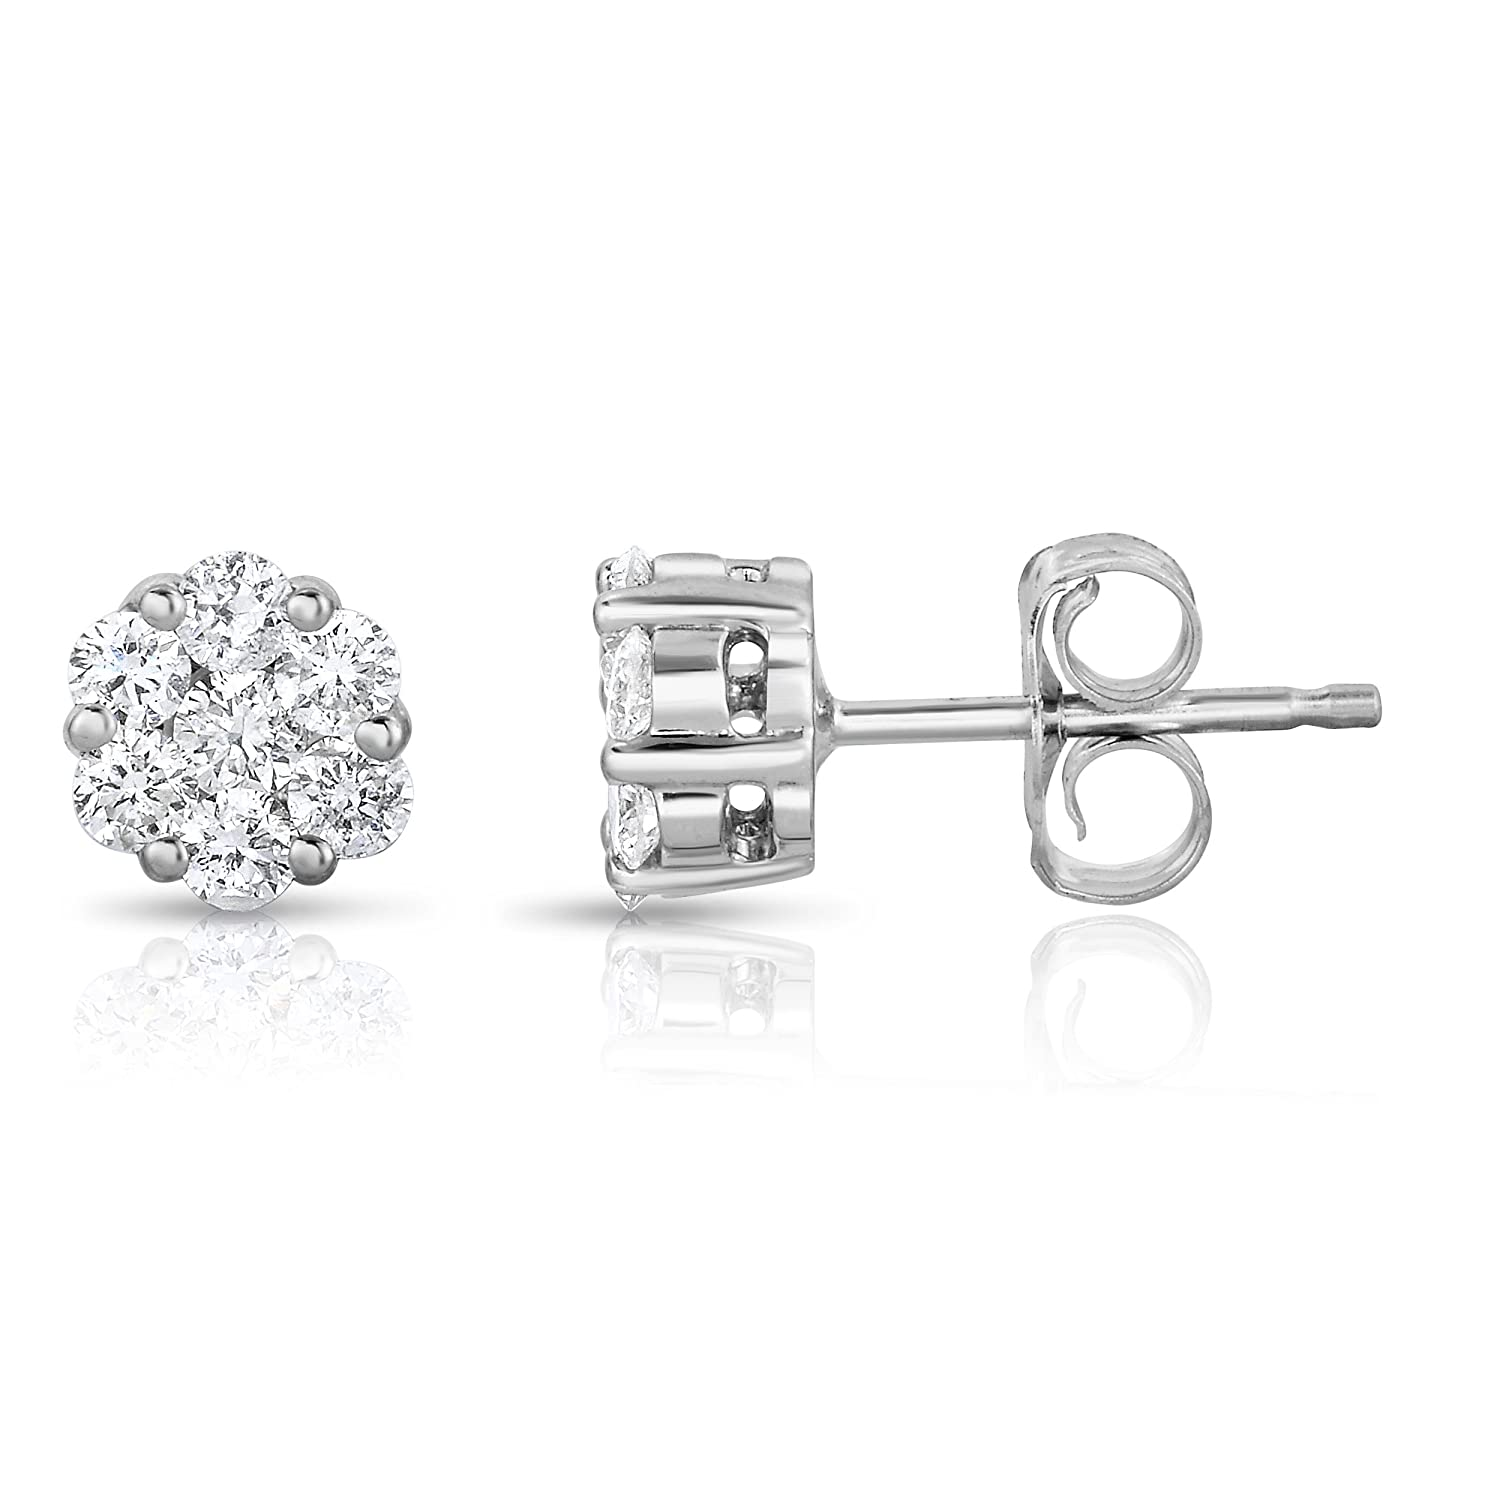 Noray Designs 14K White Gold Diamond (1/4 Ct, G-H Color, SI2-I1 Clarity) Cluster Stud Earrings